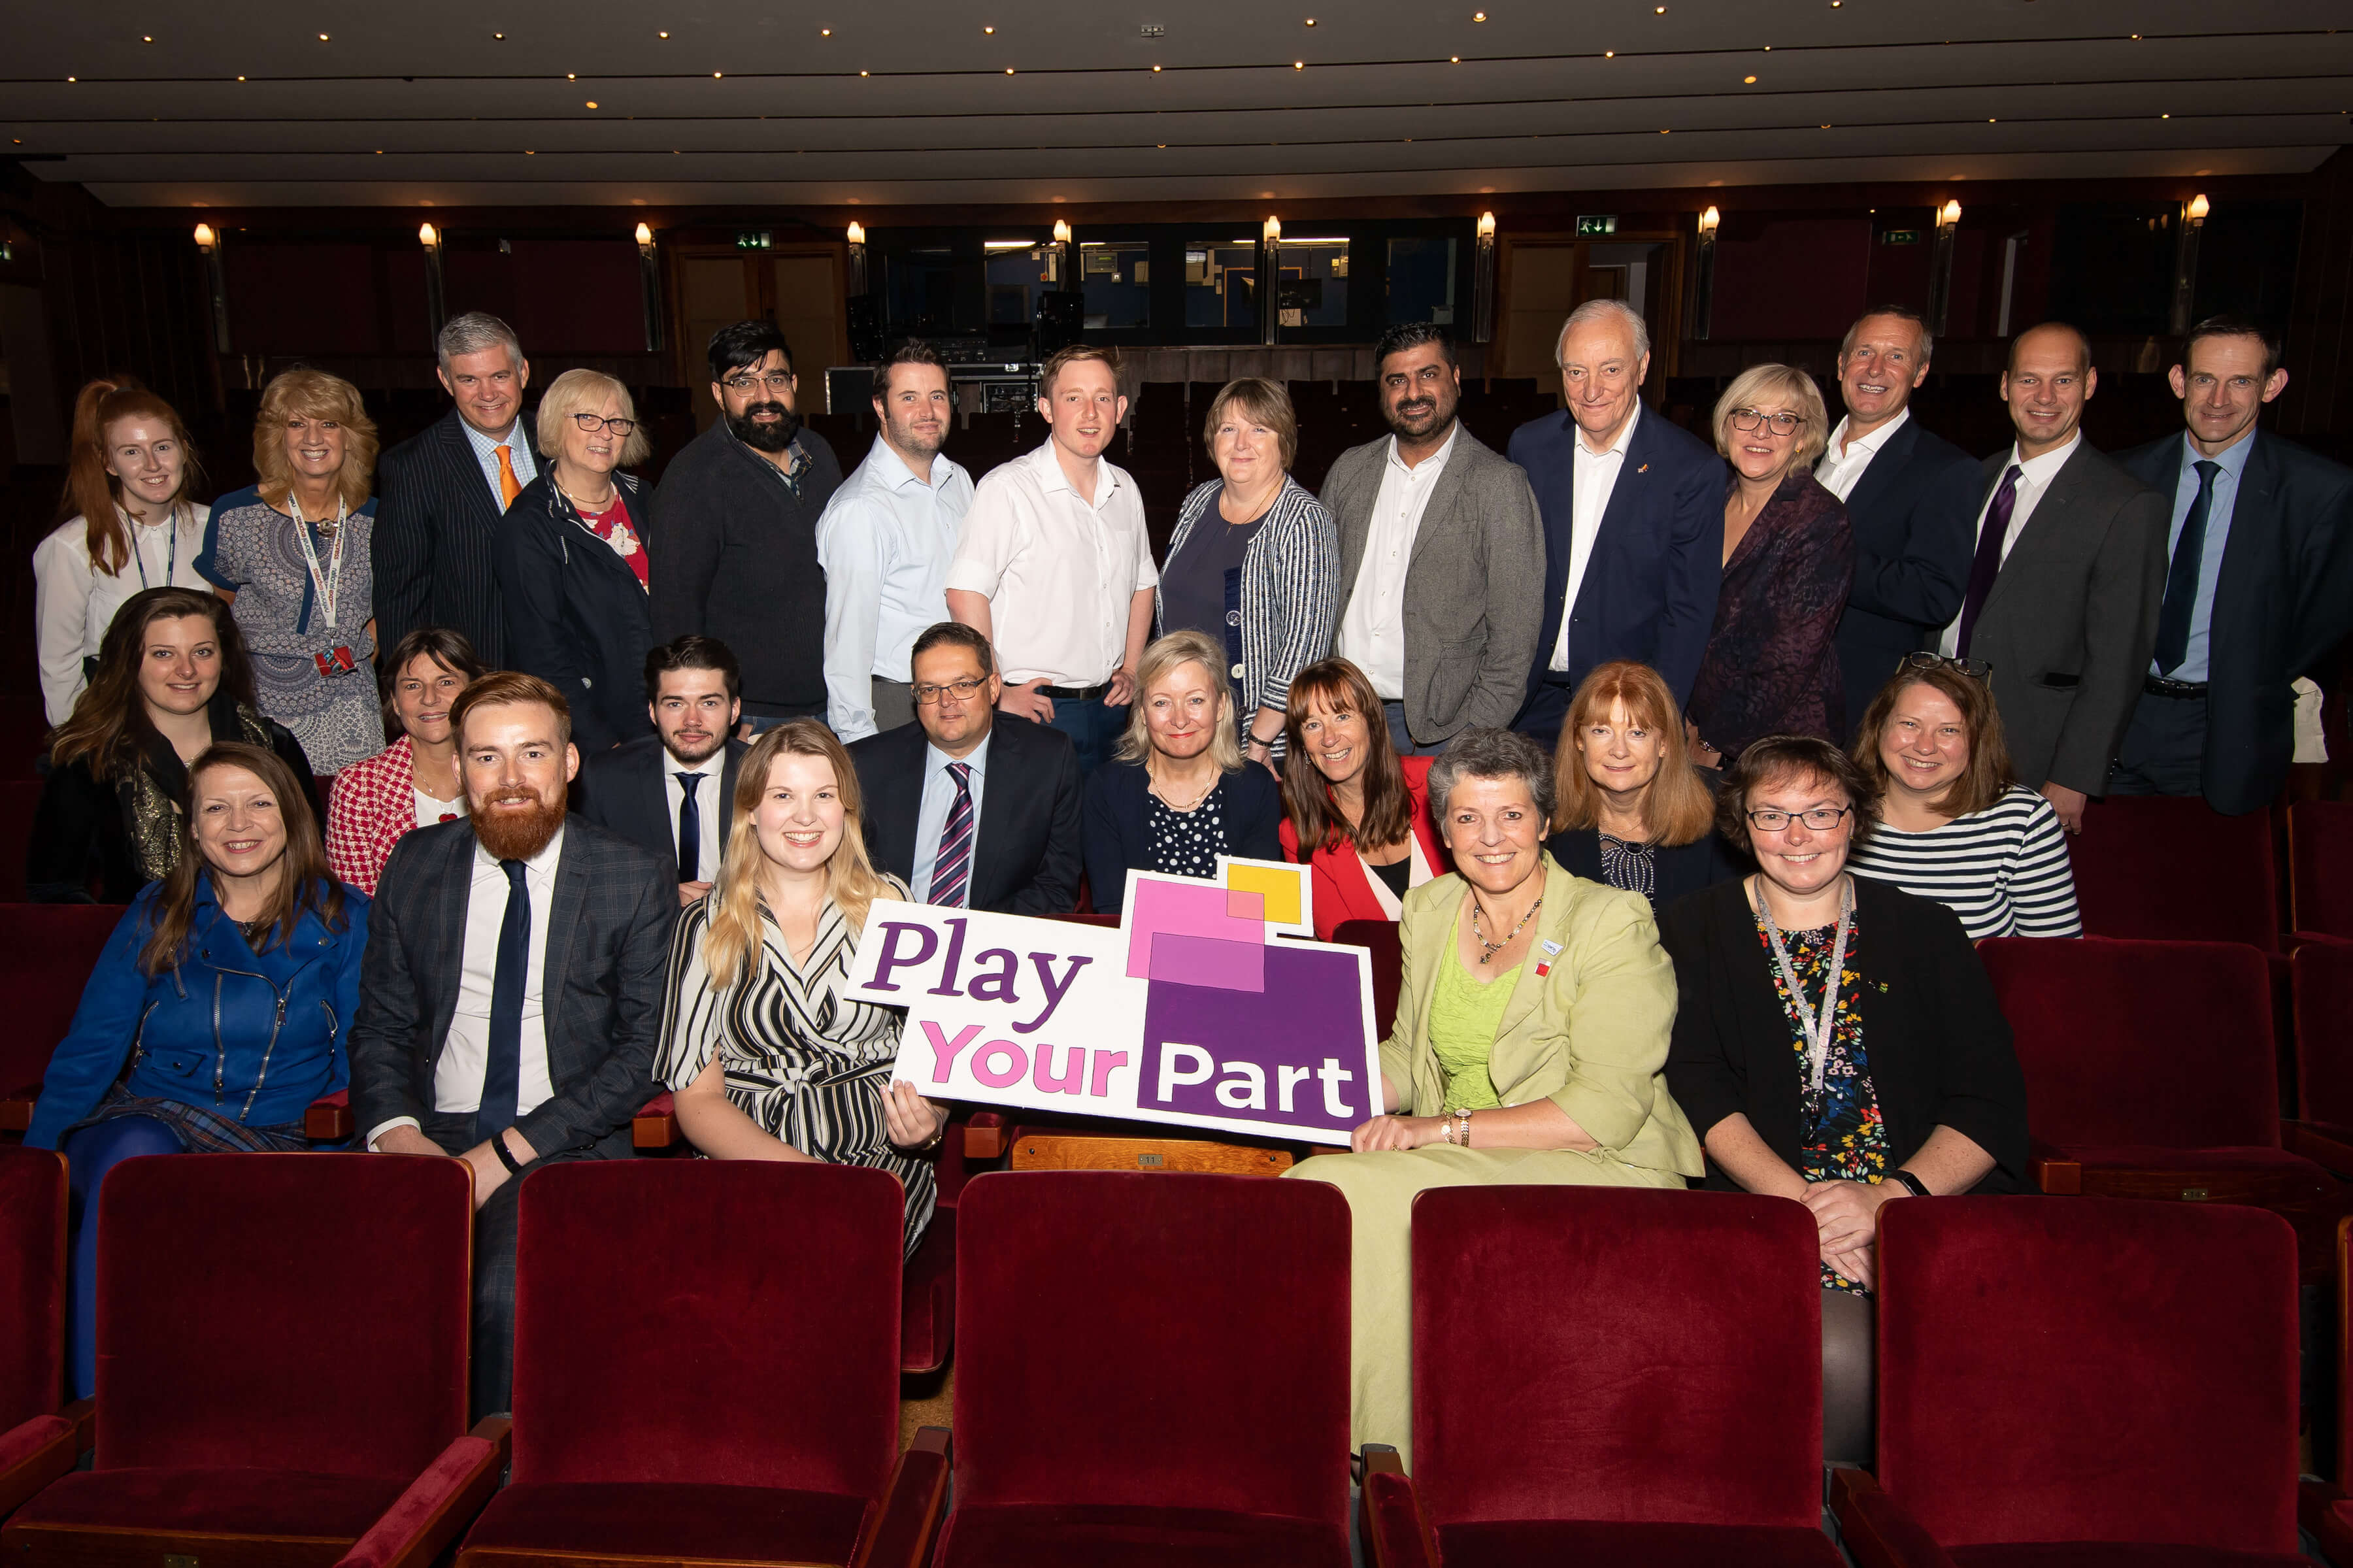 Image for Businesses urged: 'Play Your Part' in Belgrade appeal